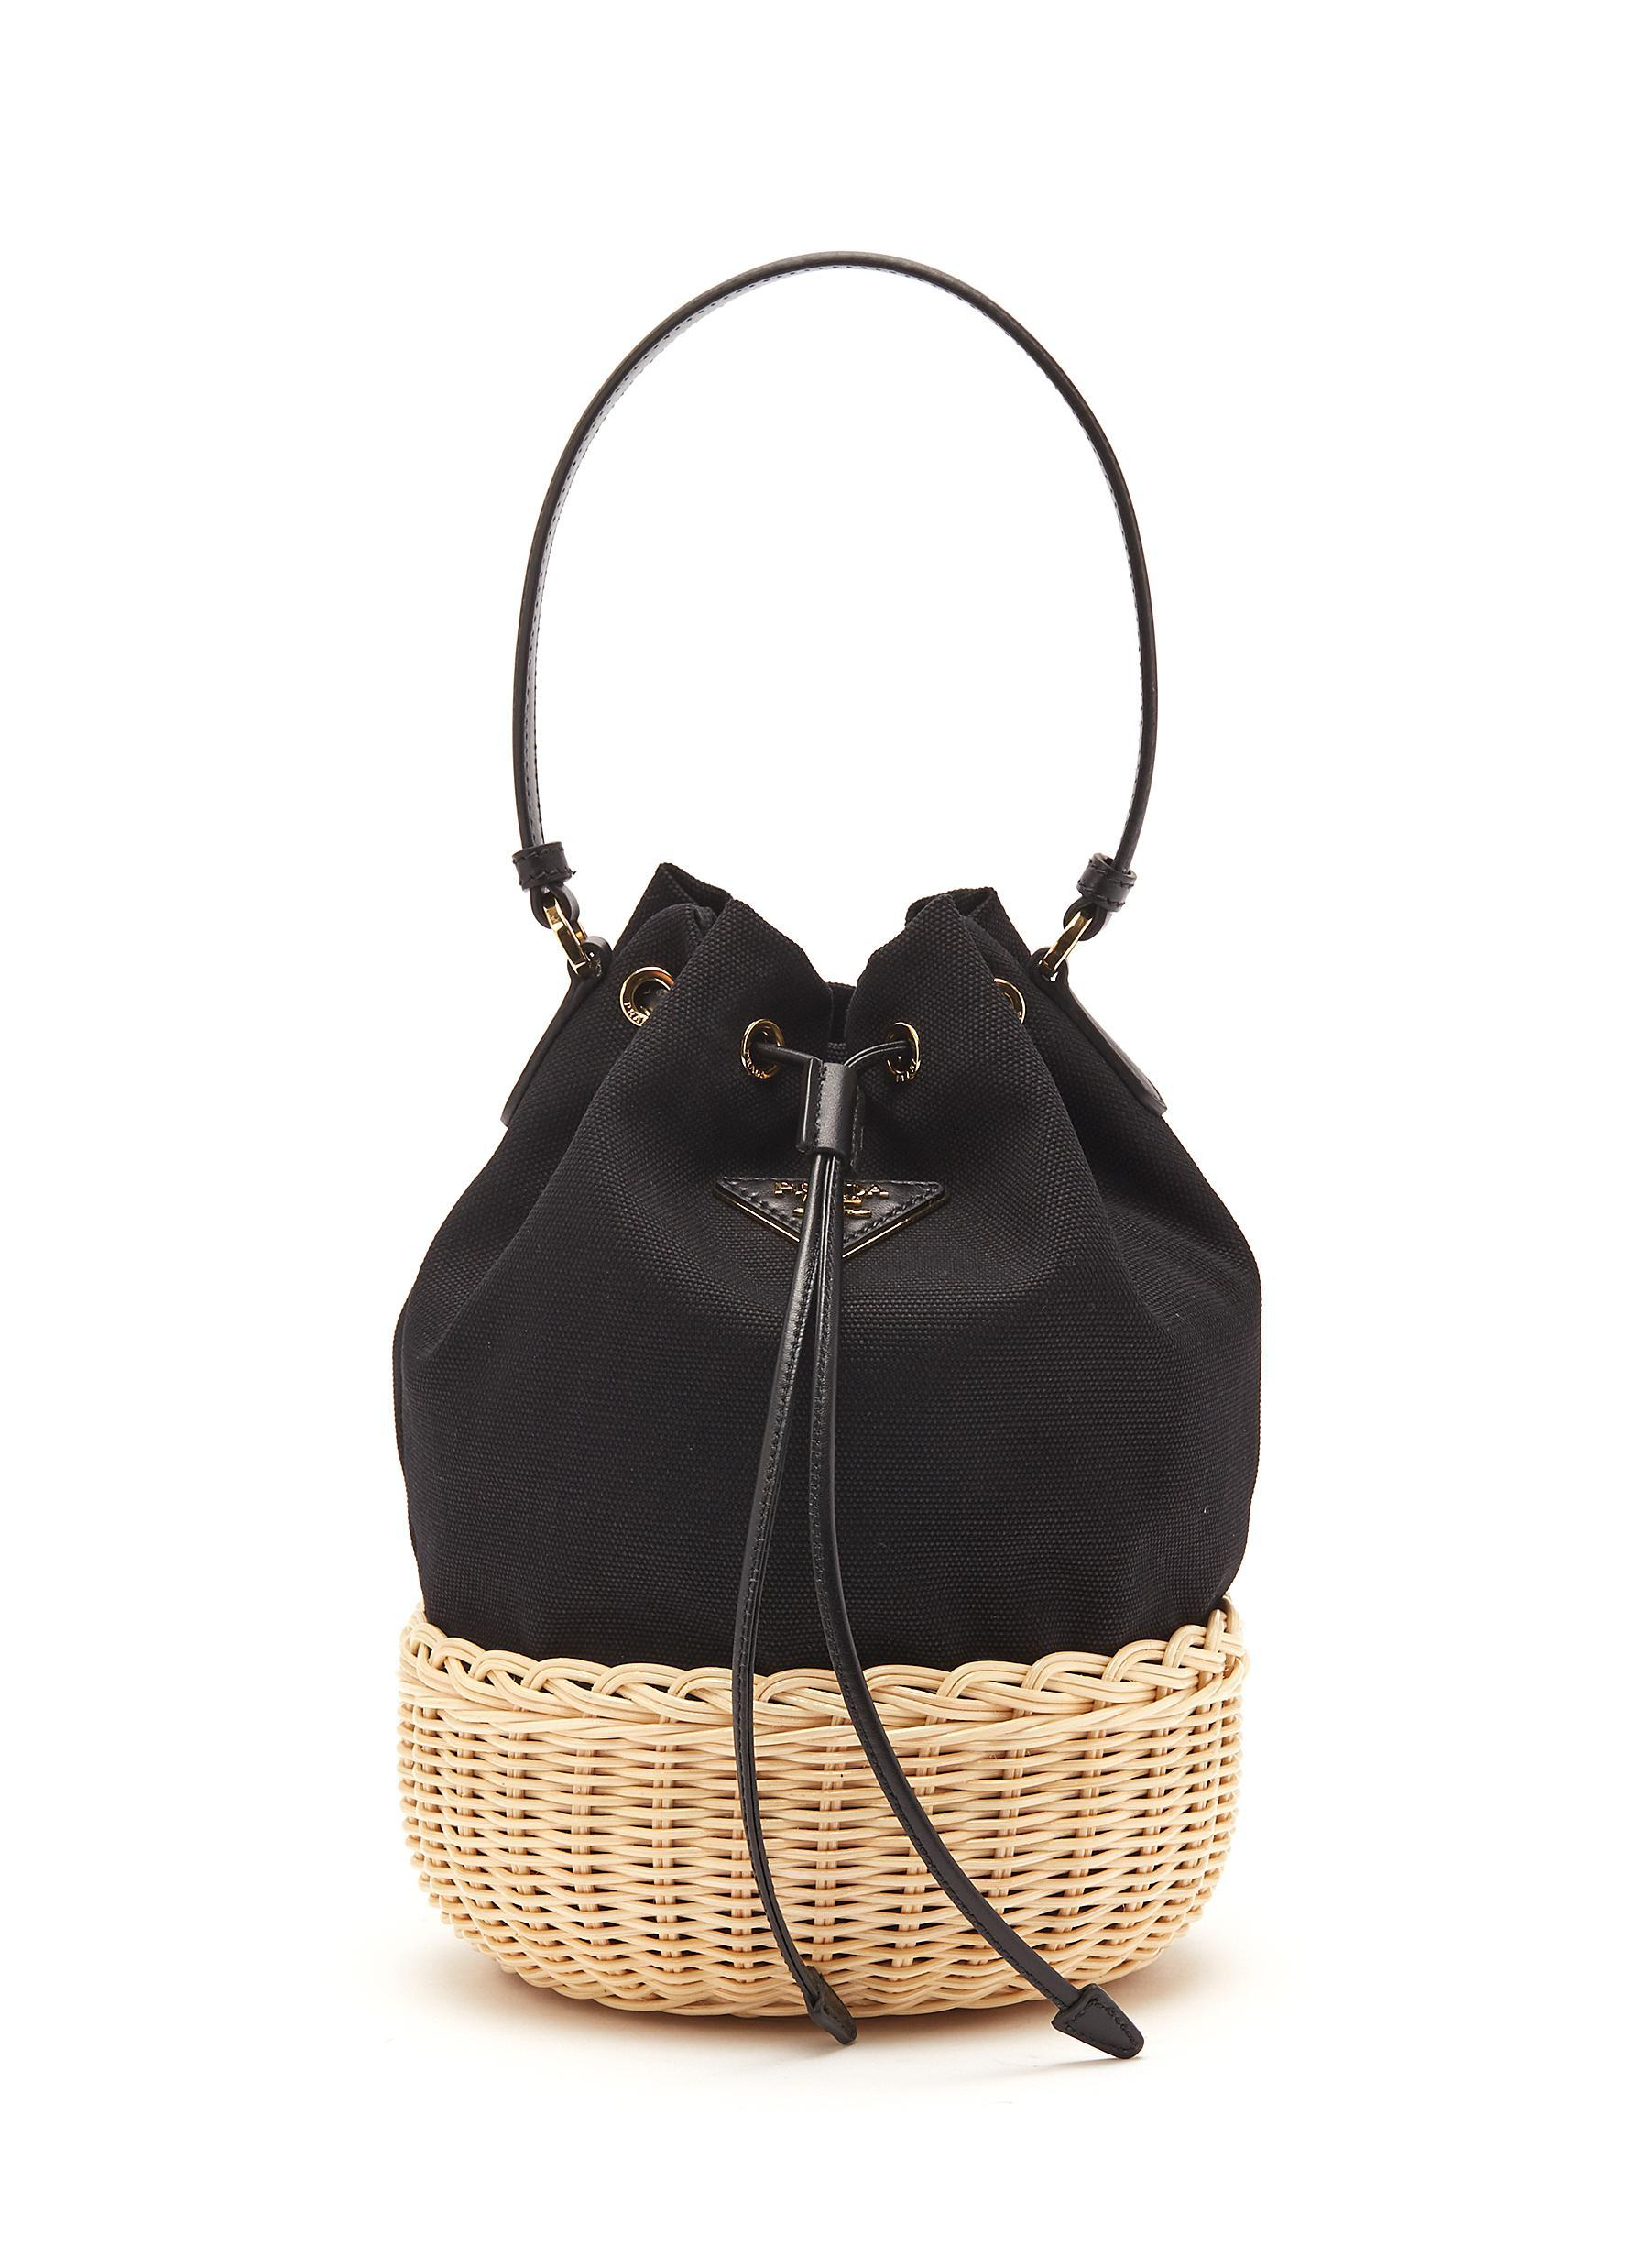 3b0adf94d3f5 Lyst - Prada Basketweave Panel Canvas Bucket Bag in Black for Men